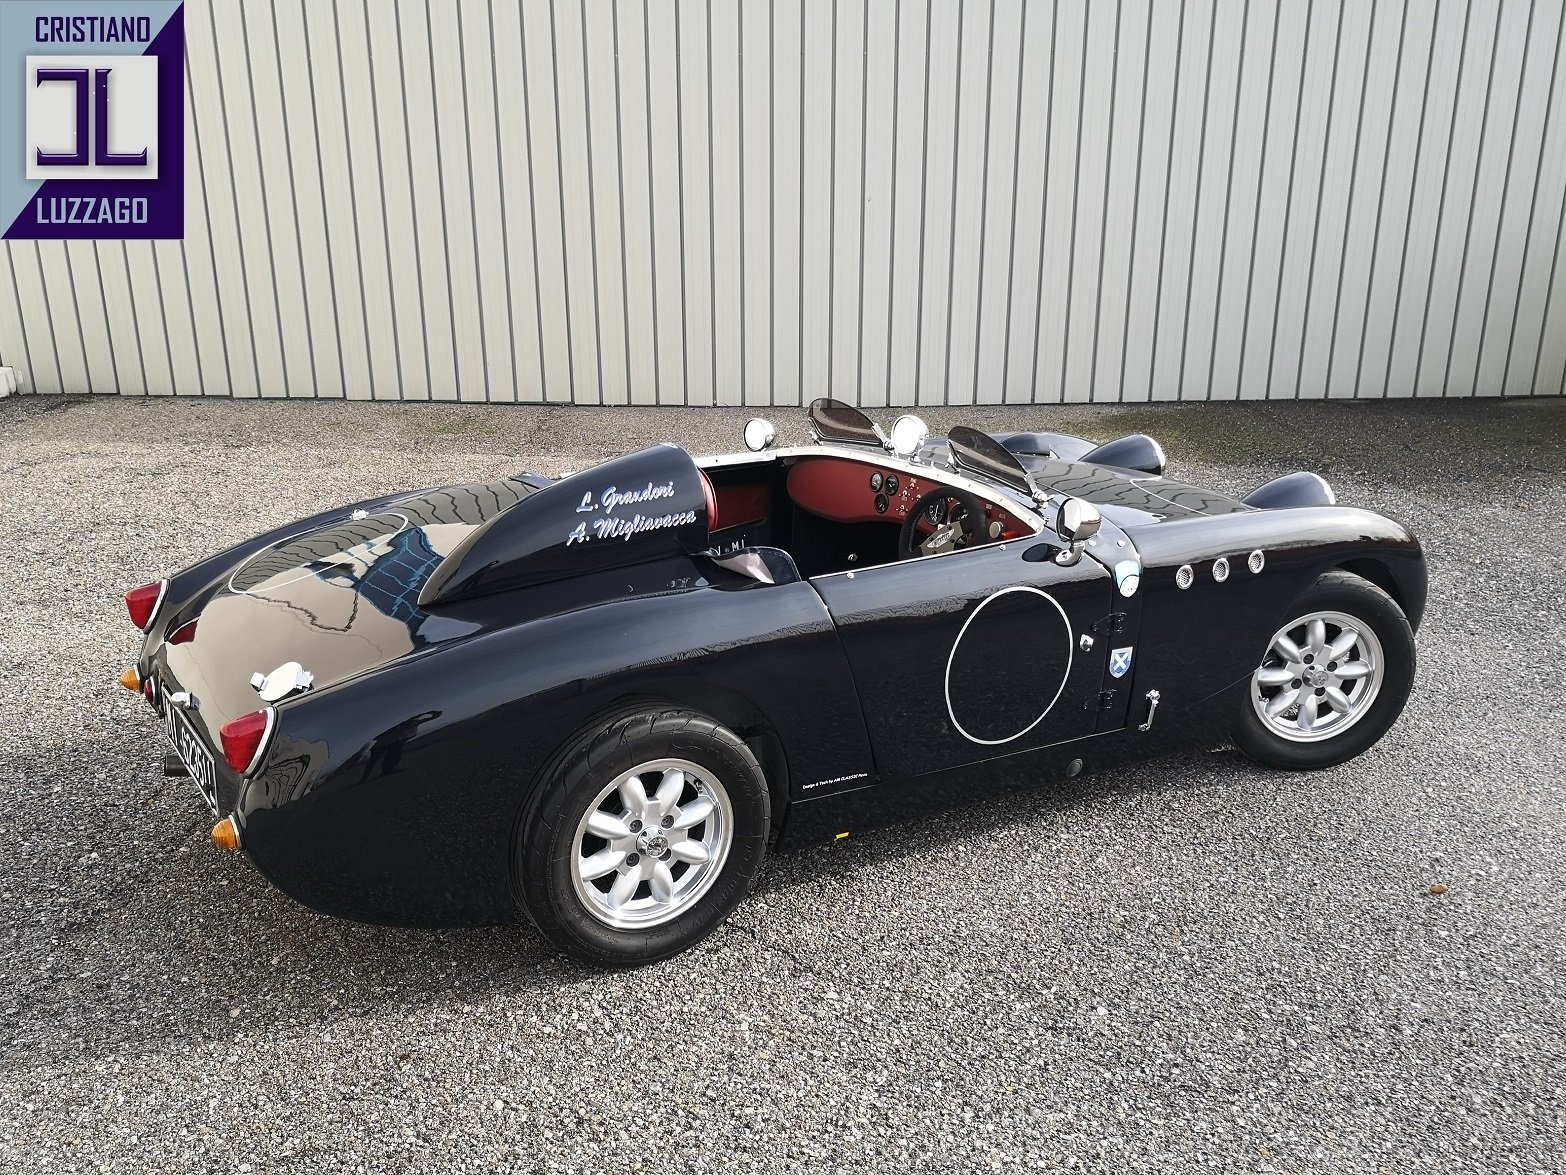 1959 AUSTIN HEALEY SPRITE EX FACTORY RALLY CAR For Sale (picture 2 of 6)